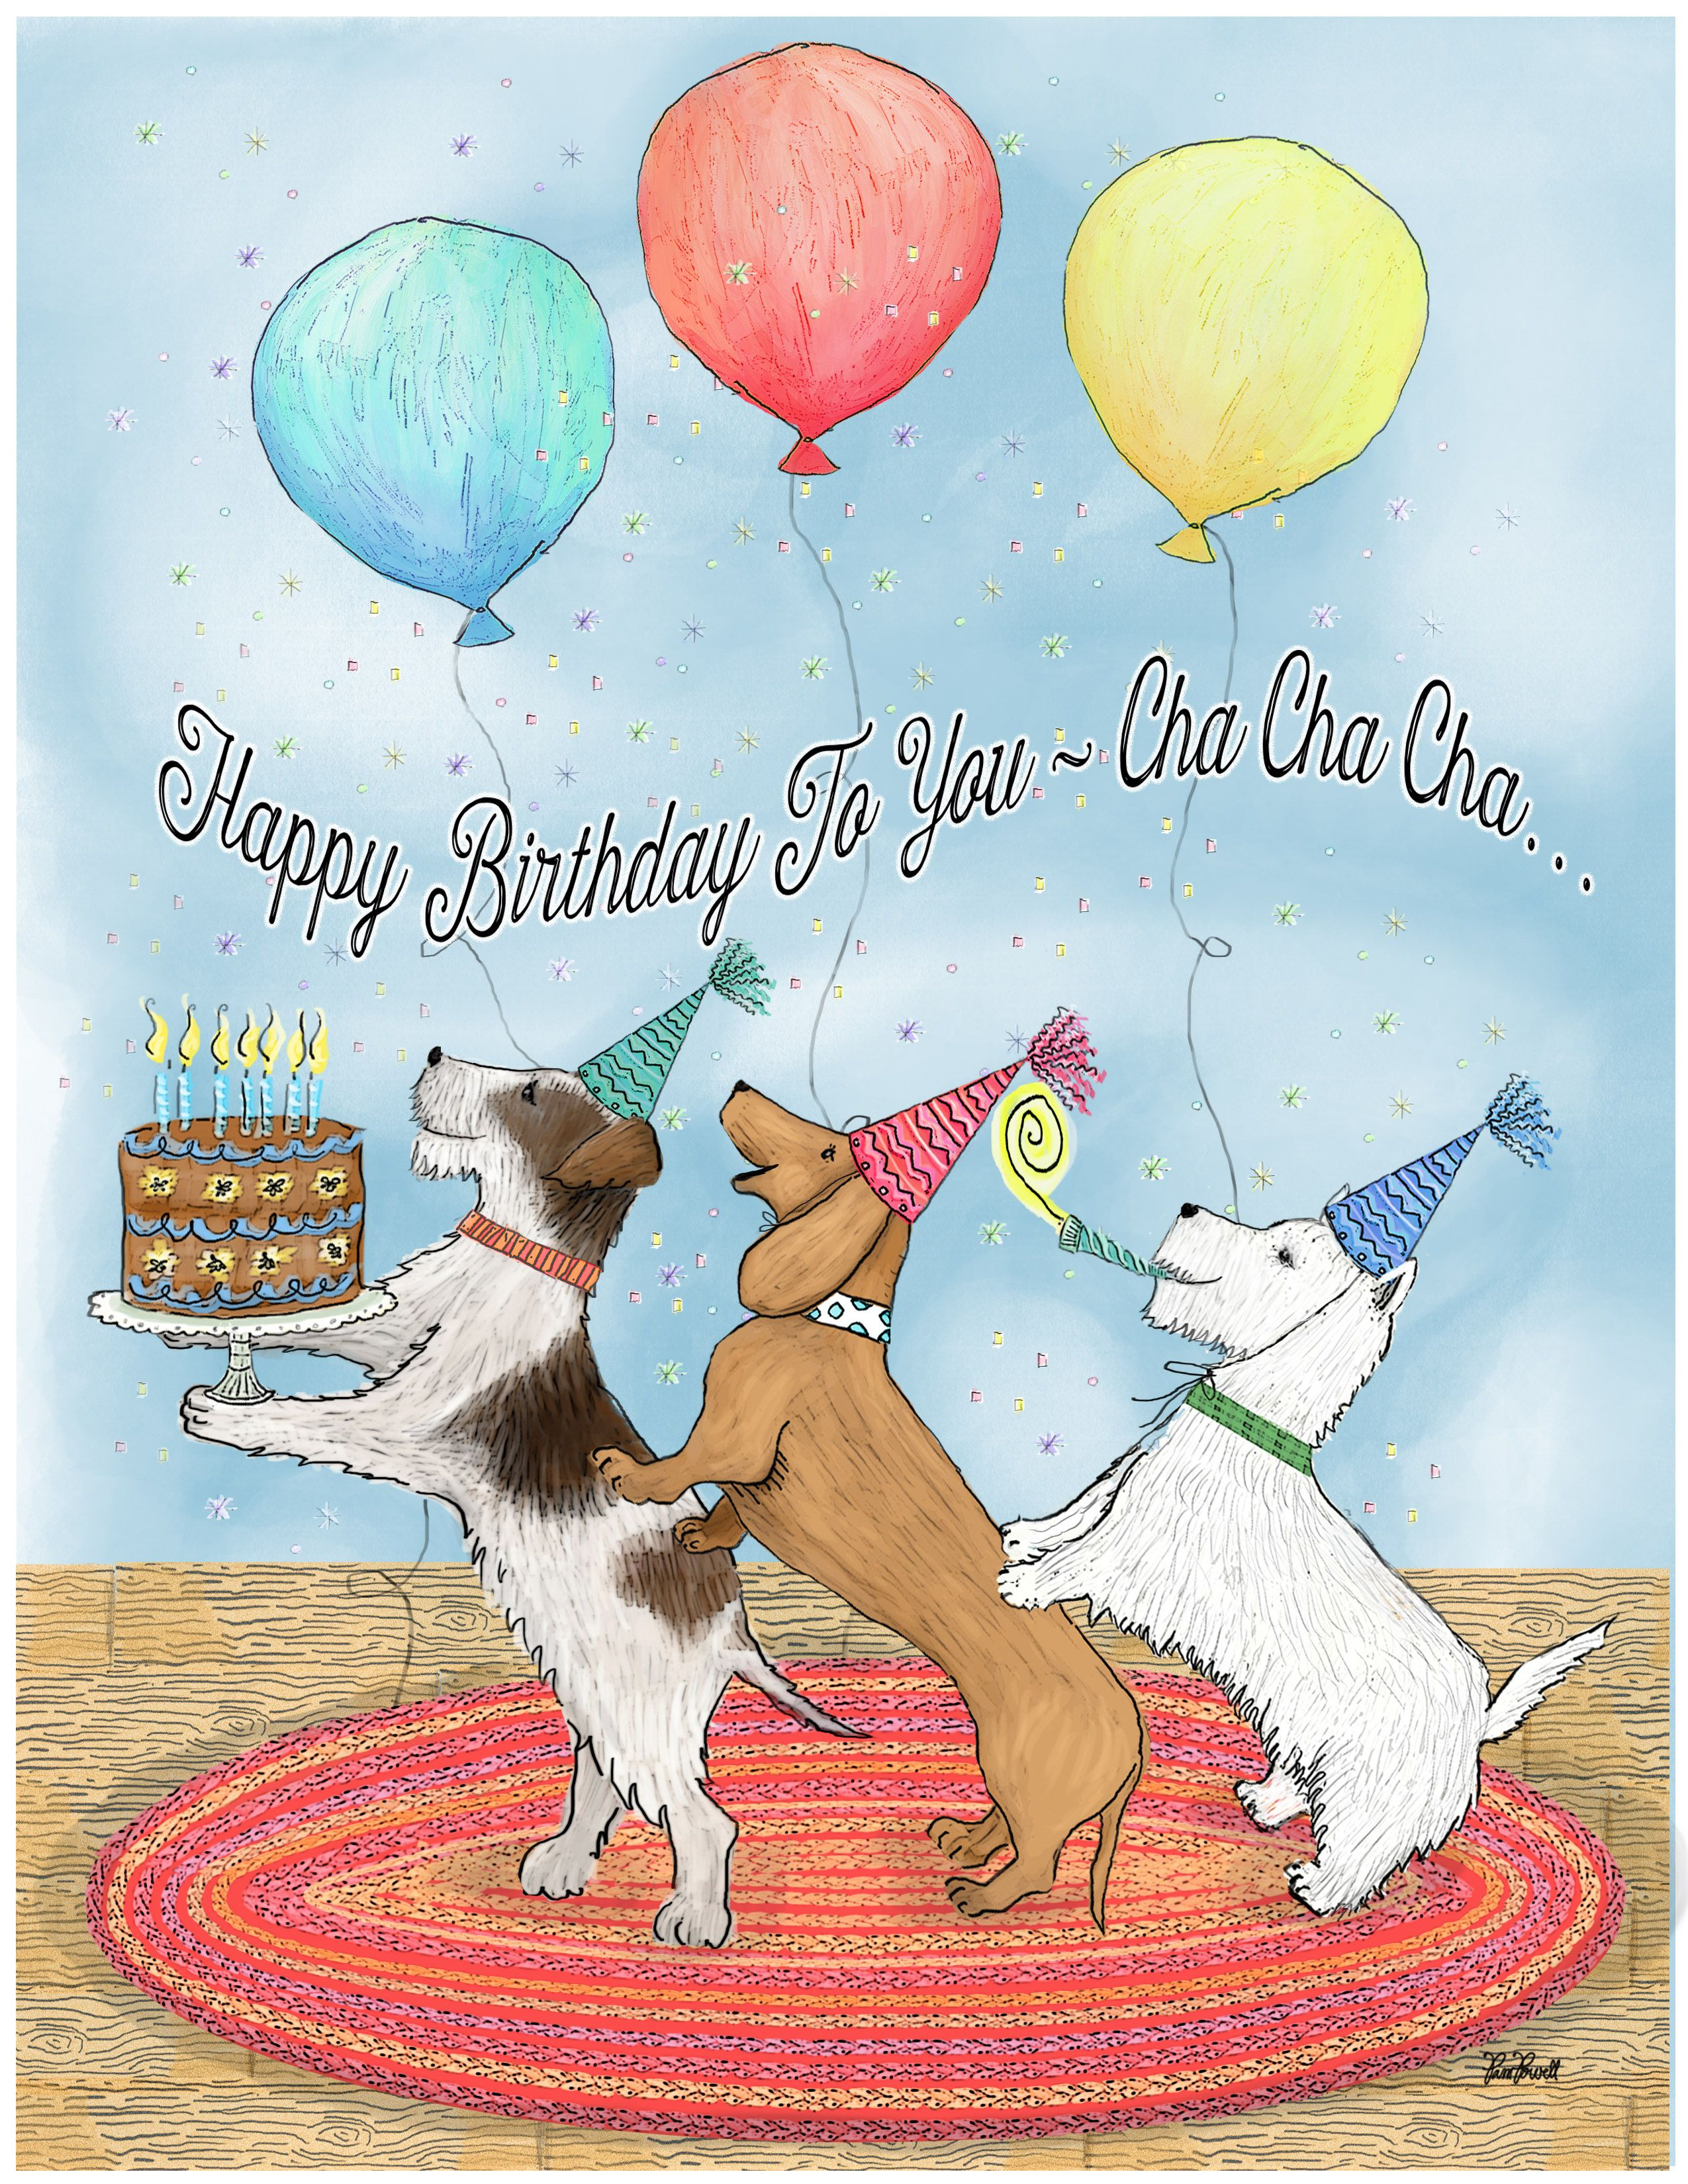 Related pictures split tongue jpg pictures to pin on pinterest - Happy Birthday To You Jpg 2550 3300